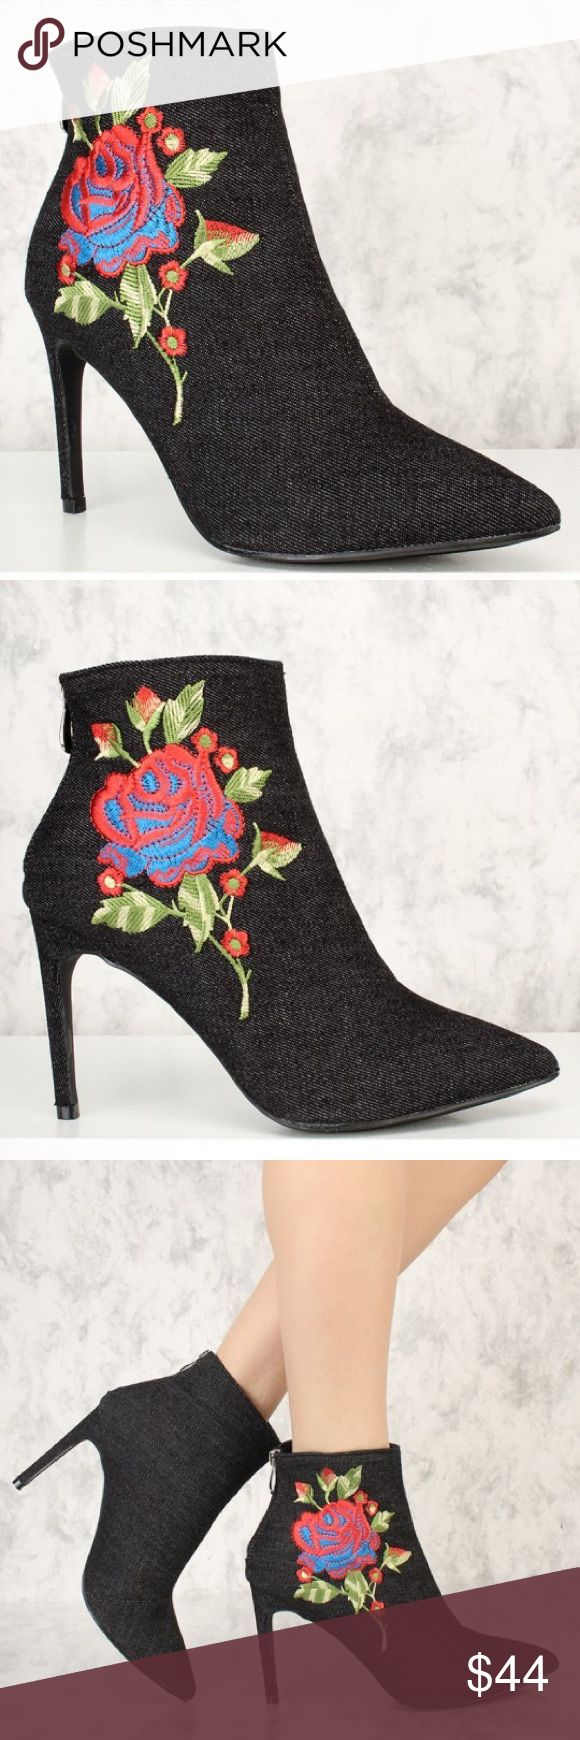 Denim boots Black denim boots with floral embroidered patch. Available sizes 6, 6.5, 7, 7.5, 8, 8.5, 9, 10, 11 please let me know what size you like Shoes Ankle Boots & Booties